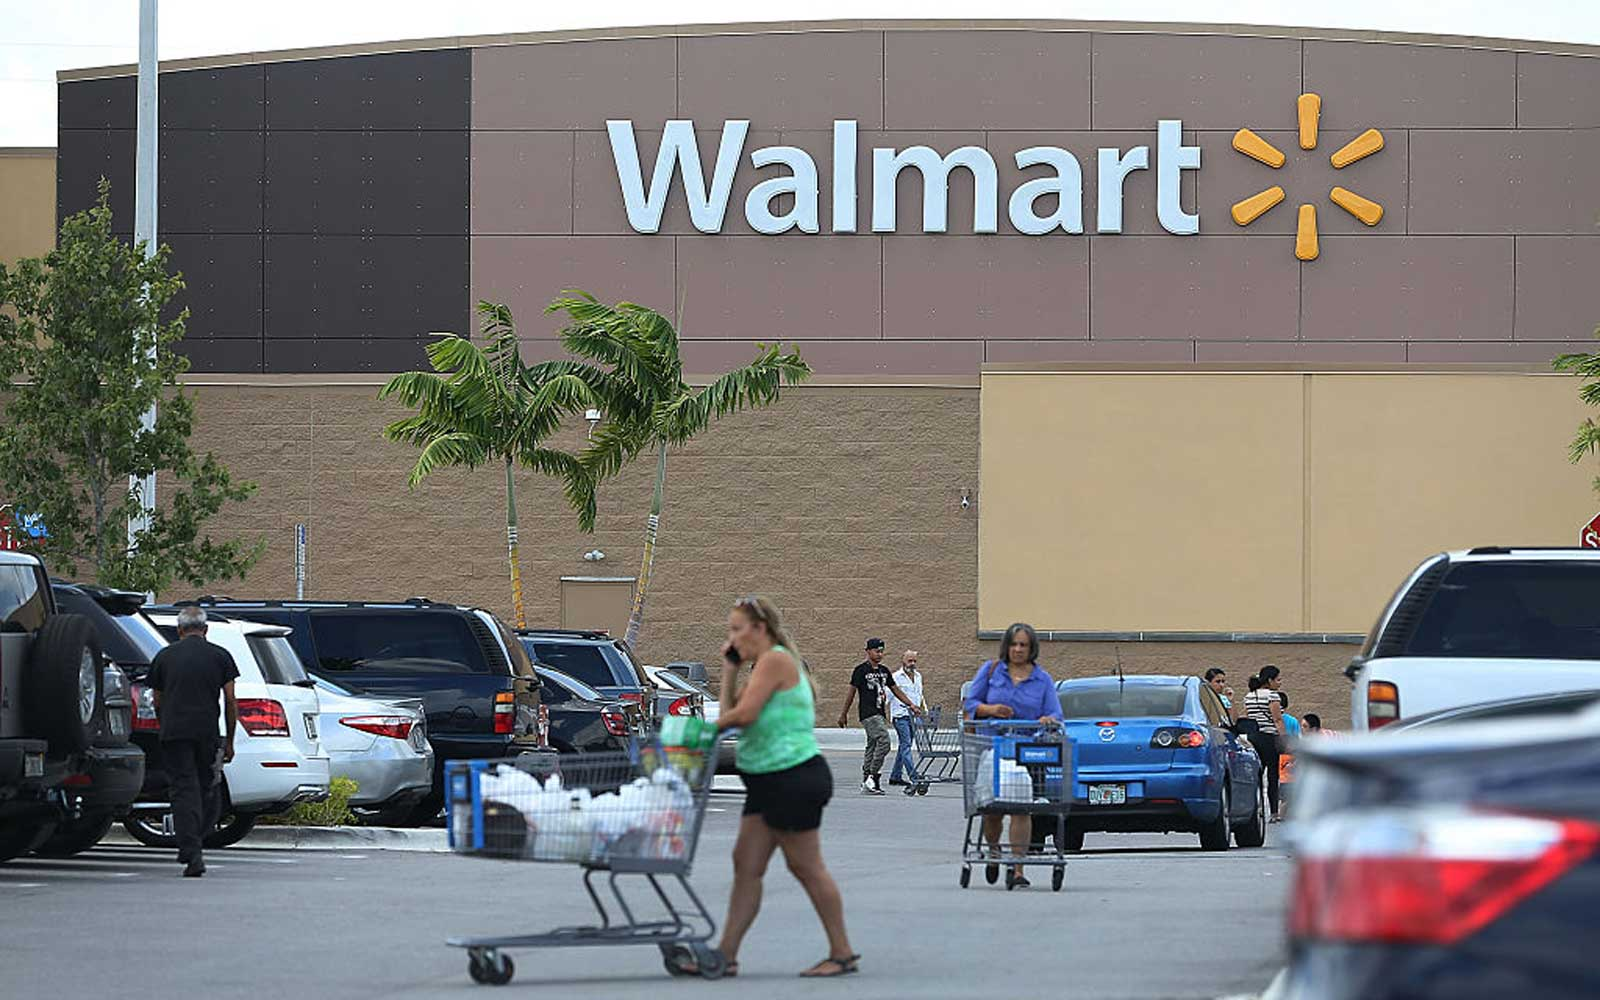 Walmart store in Miami, Florida